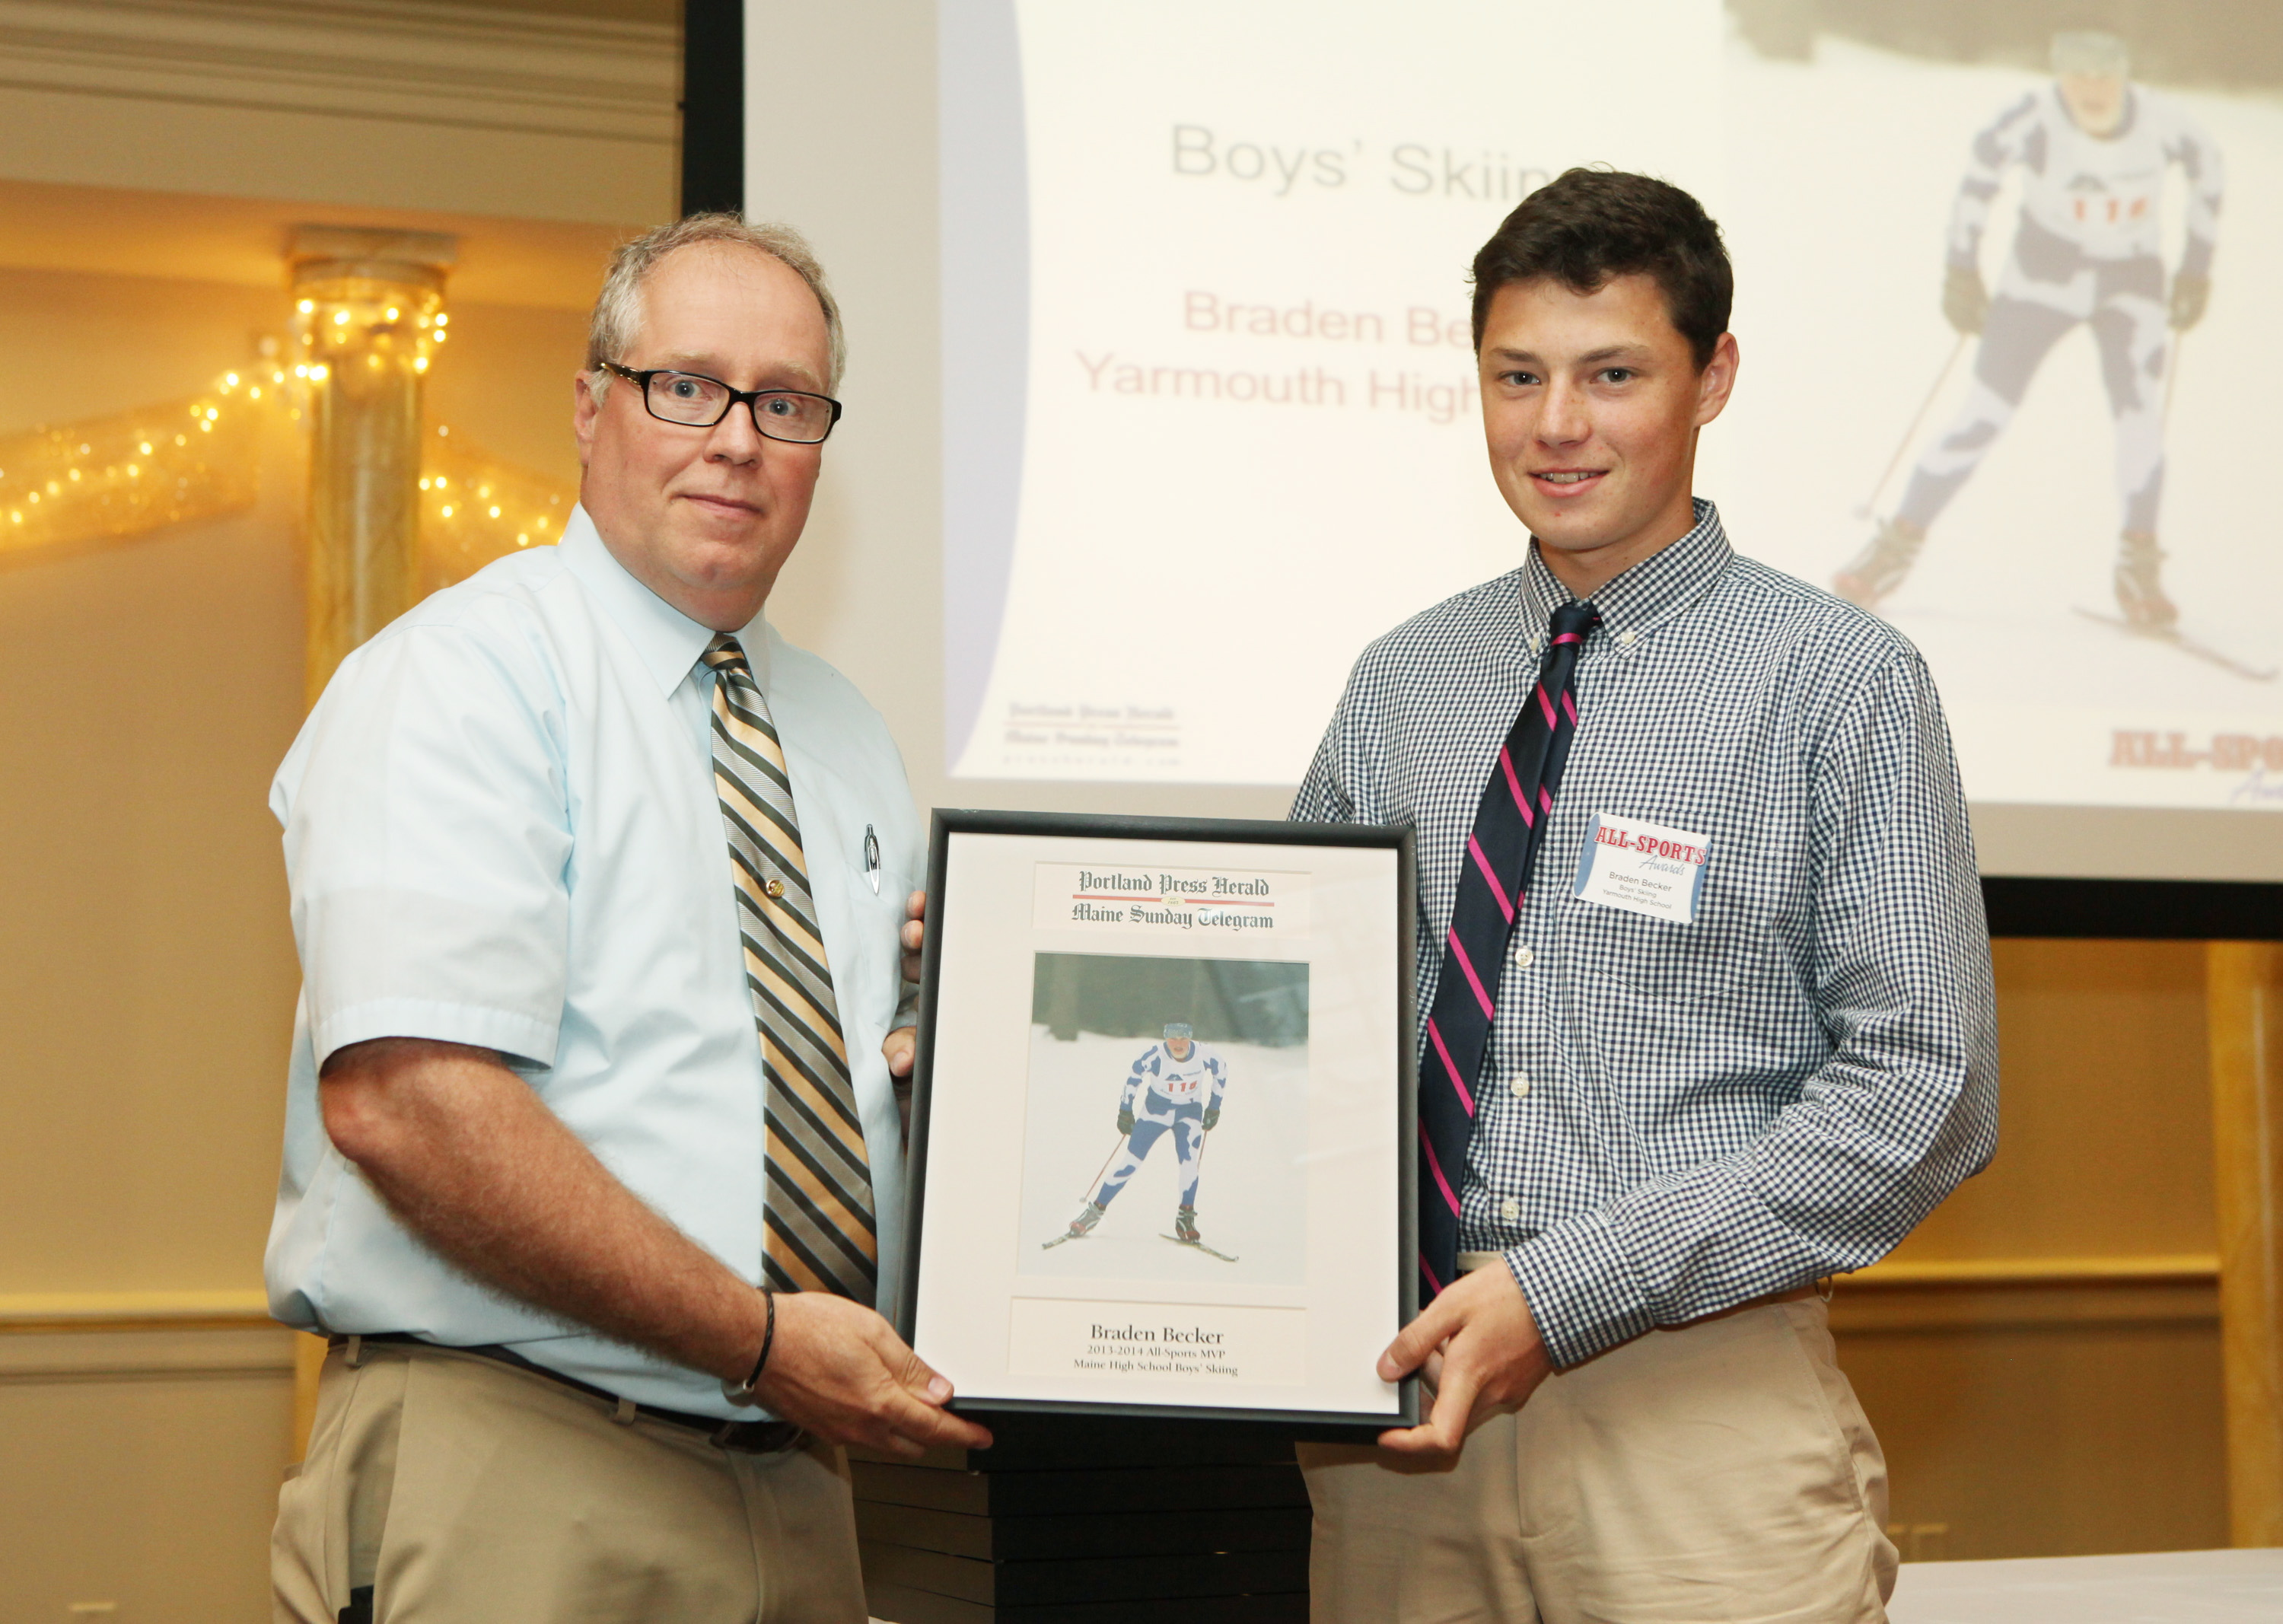 Braden Becker of Yarmouth High School receives an award for skiing from Press Herald sports writer Mike Lowe during the 27th Annual All-Sports Awards Sunday. Joel Page/Staff Photographer